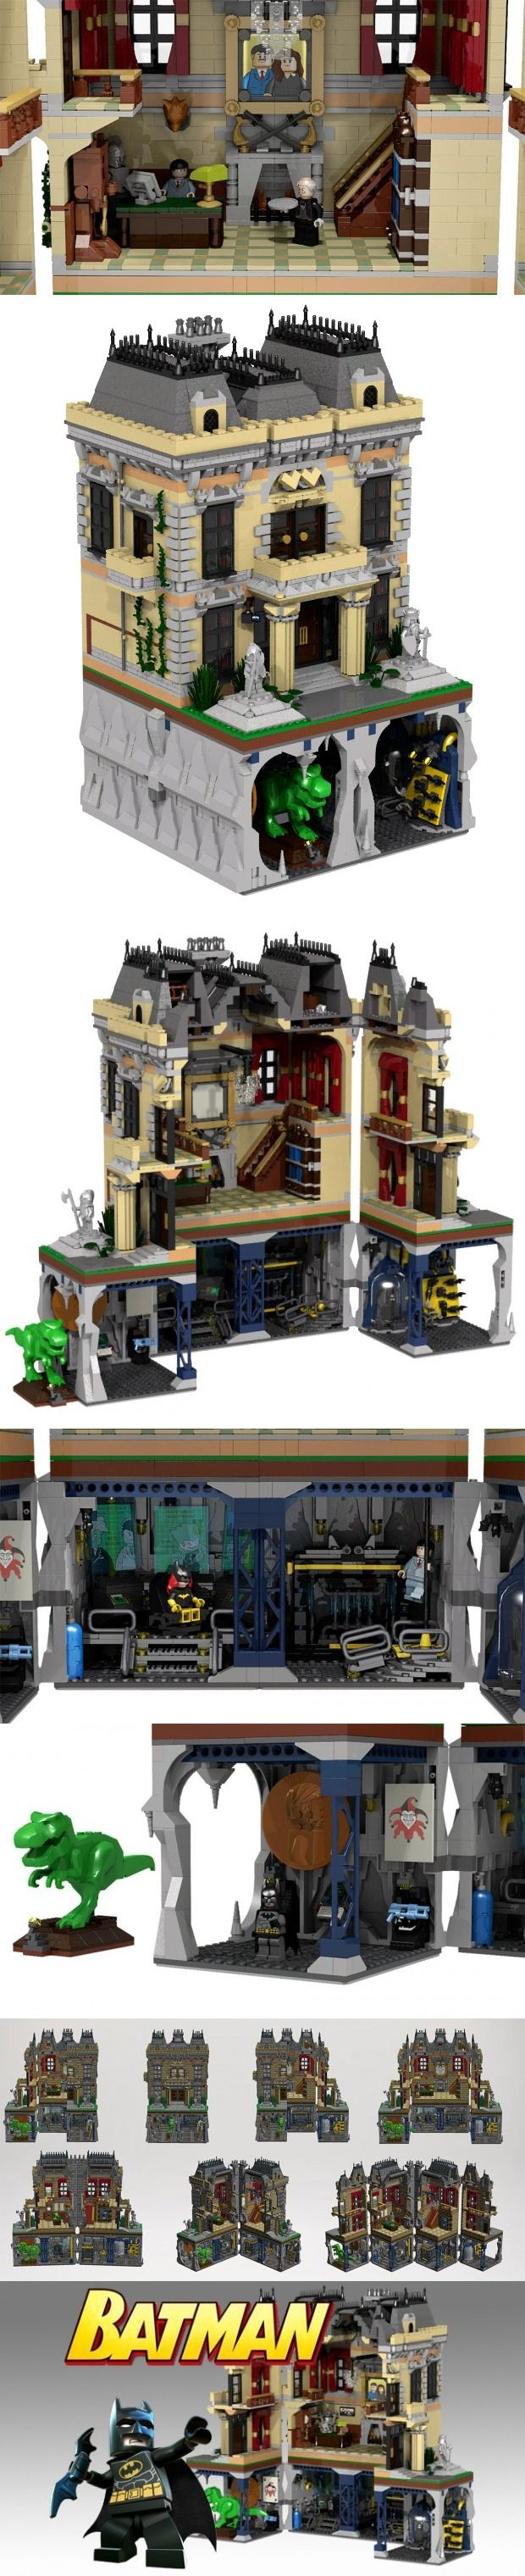 Batman Assault on Wayne Manor LEGO